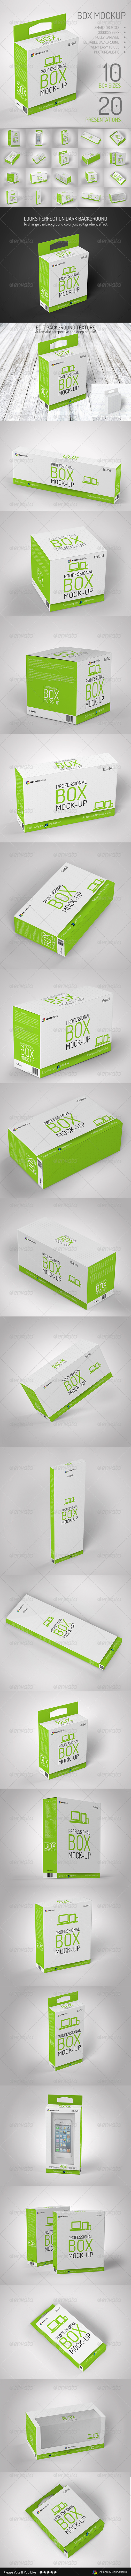 GraphicRiver Box Mock-Up 8243954